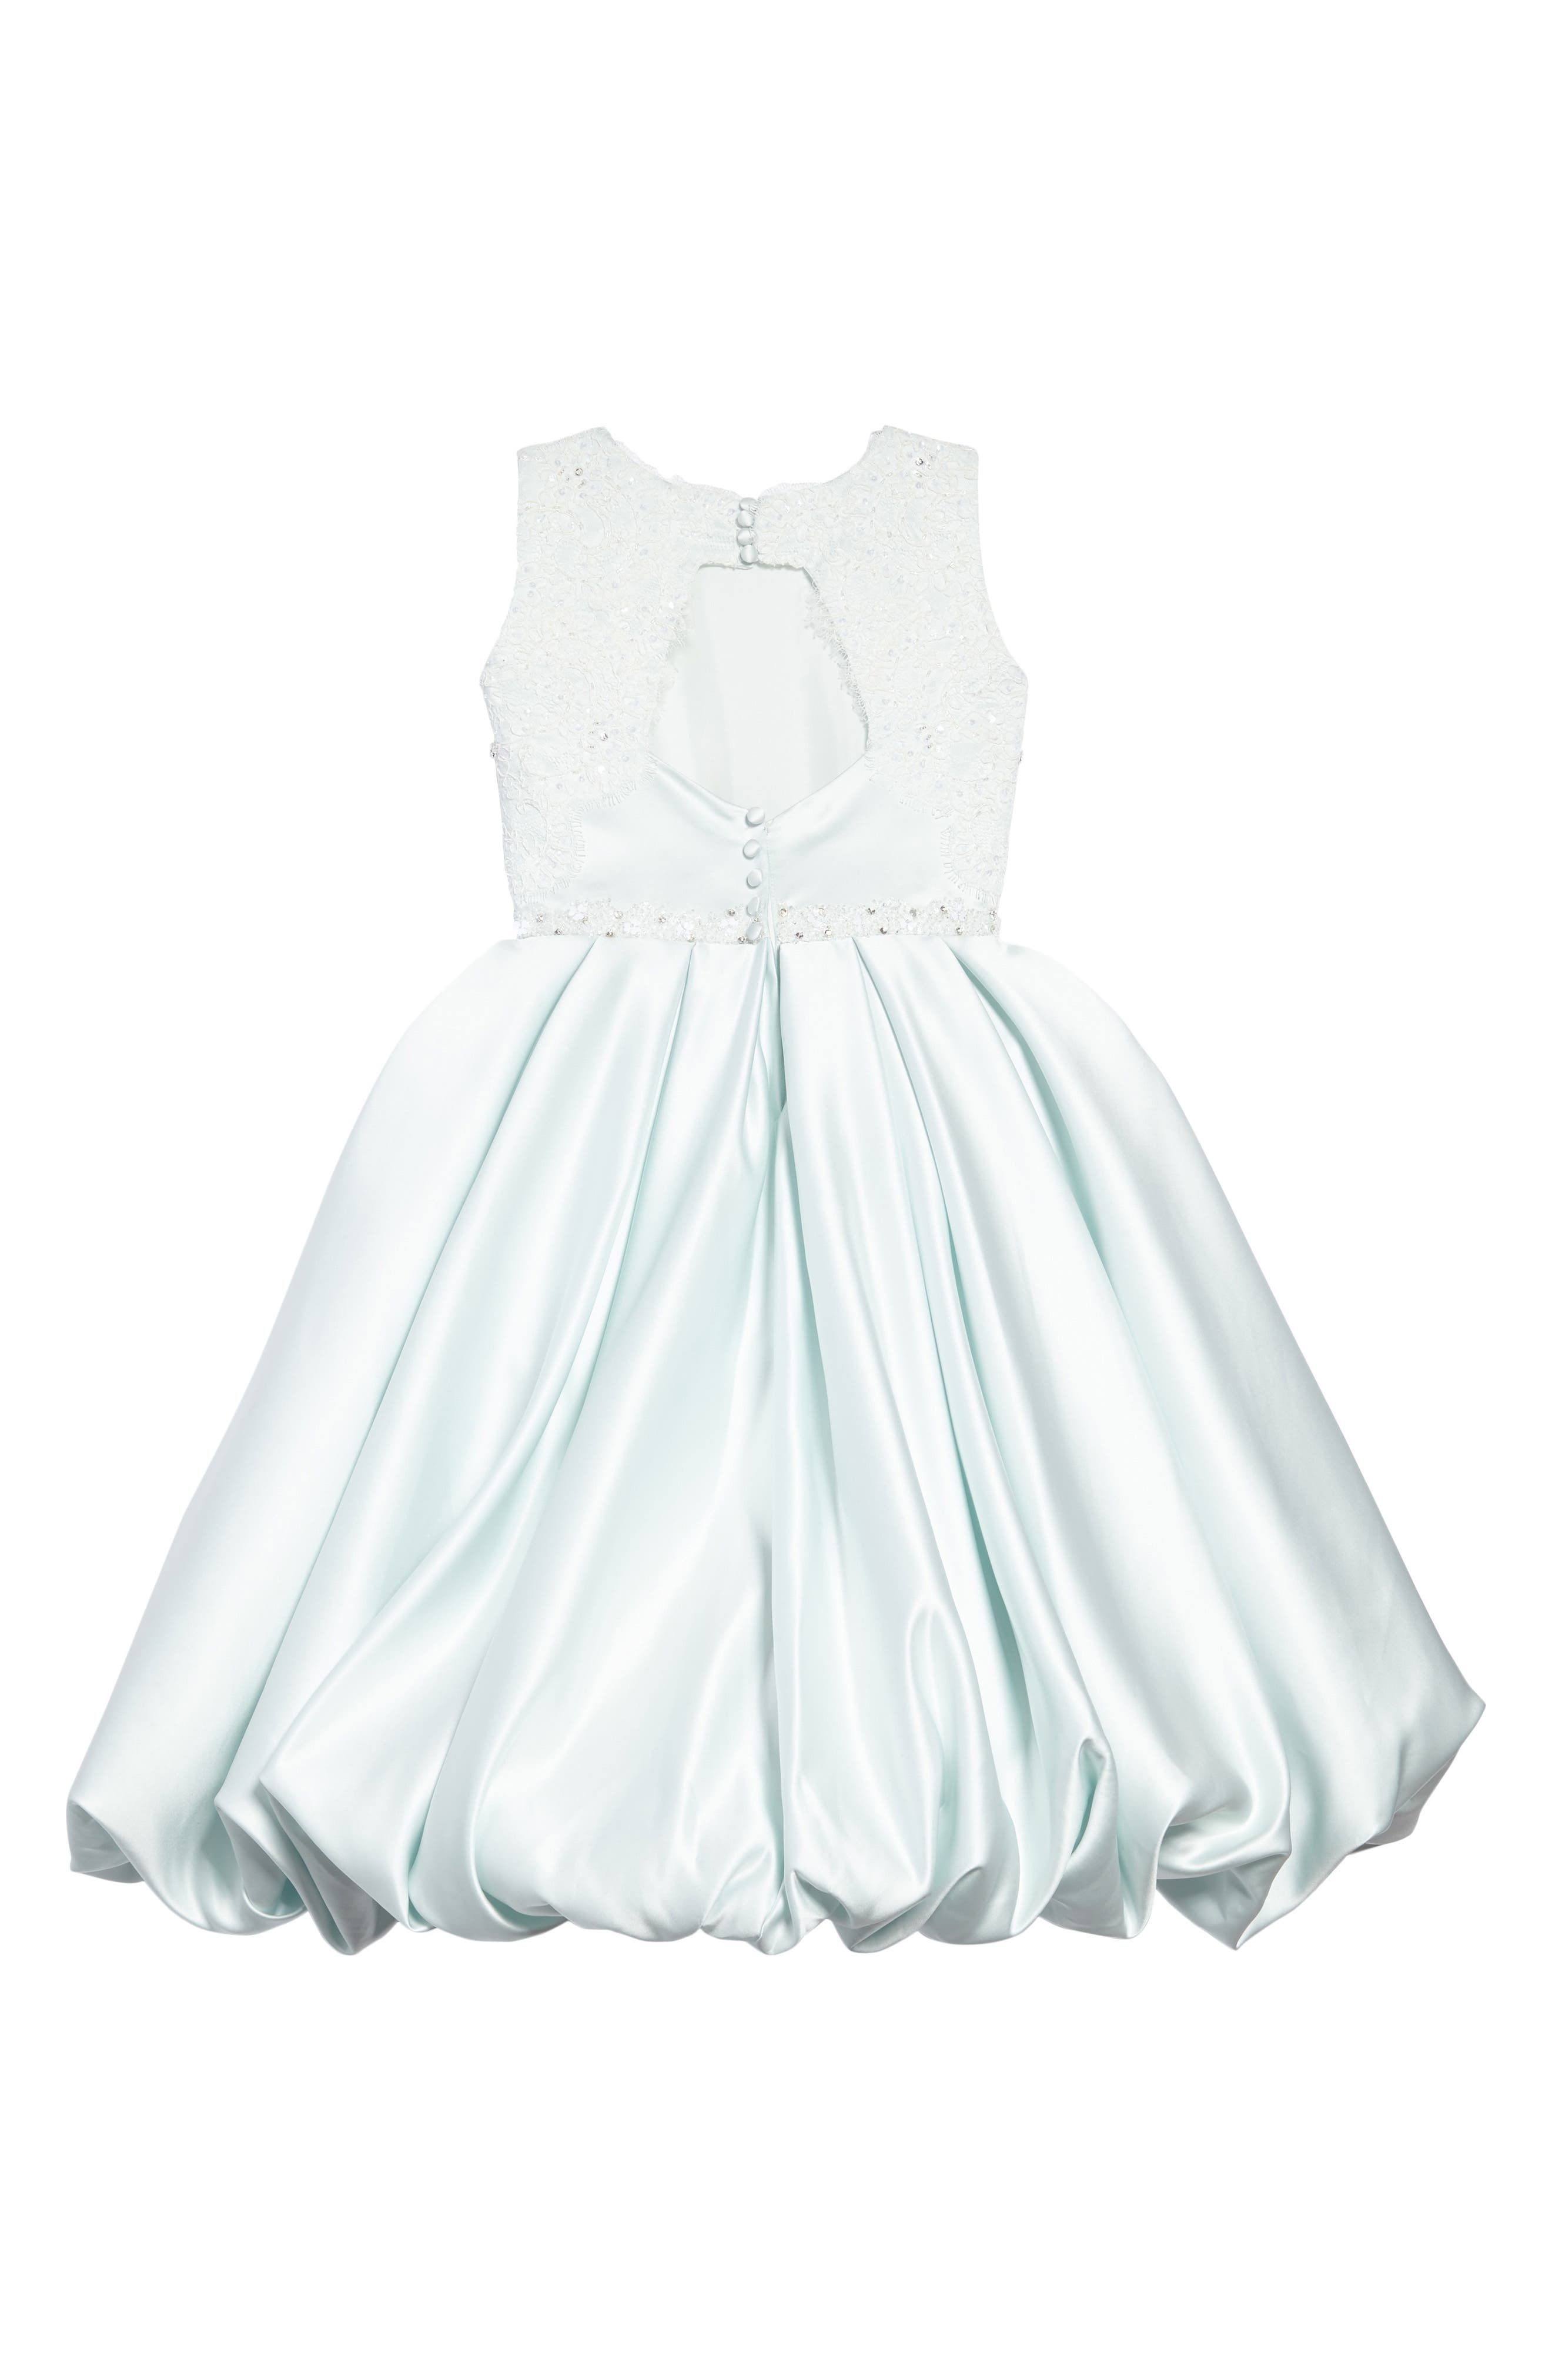 Beaded Lace & Satin First Communion Dress,                             Alternate thumbnail 2, color,                             Mist/ Ivory